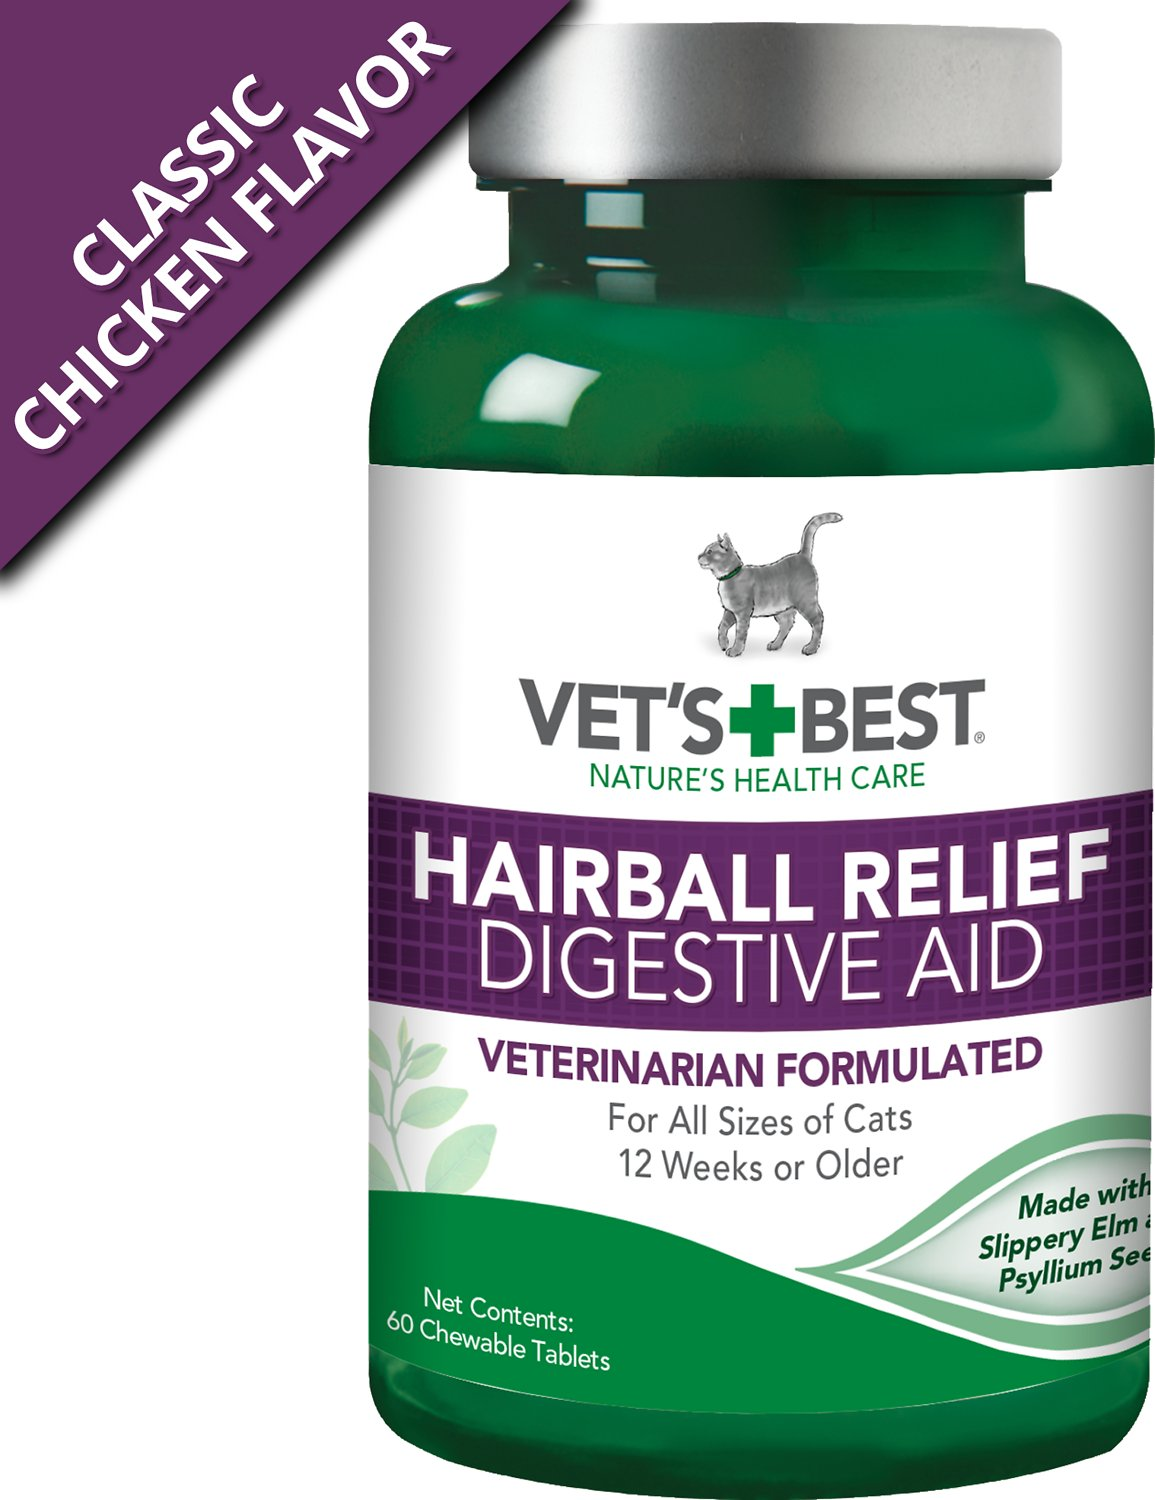 Vet's Best Hairball Relief Digestive Aid Cat Supplement, 60 count